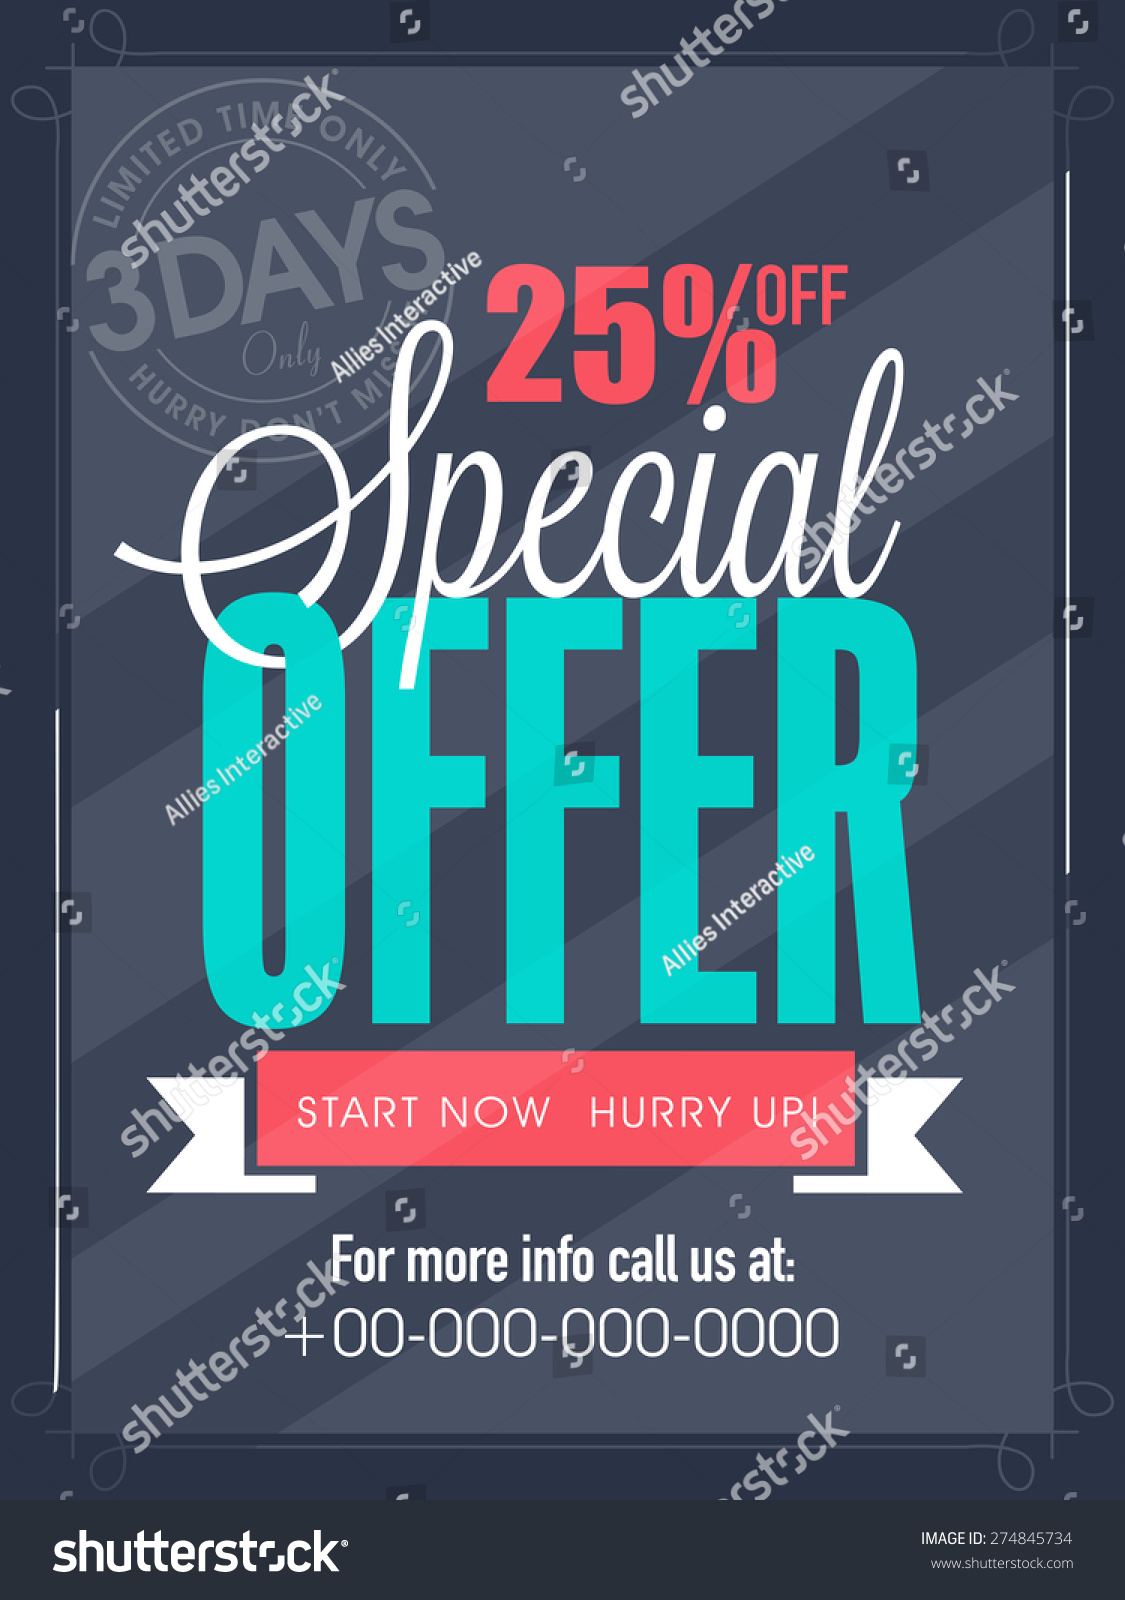 special offer days only flyer stock vector shutterstock special offer for 3 days only flyer banner or template design for your business